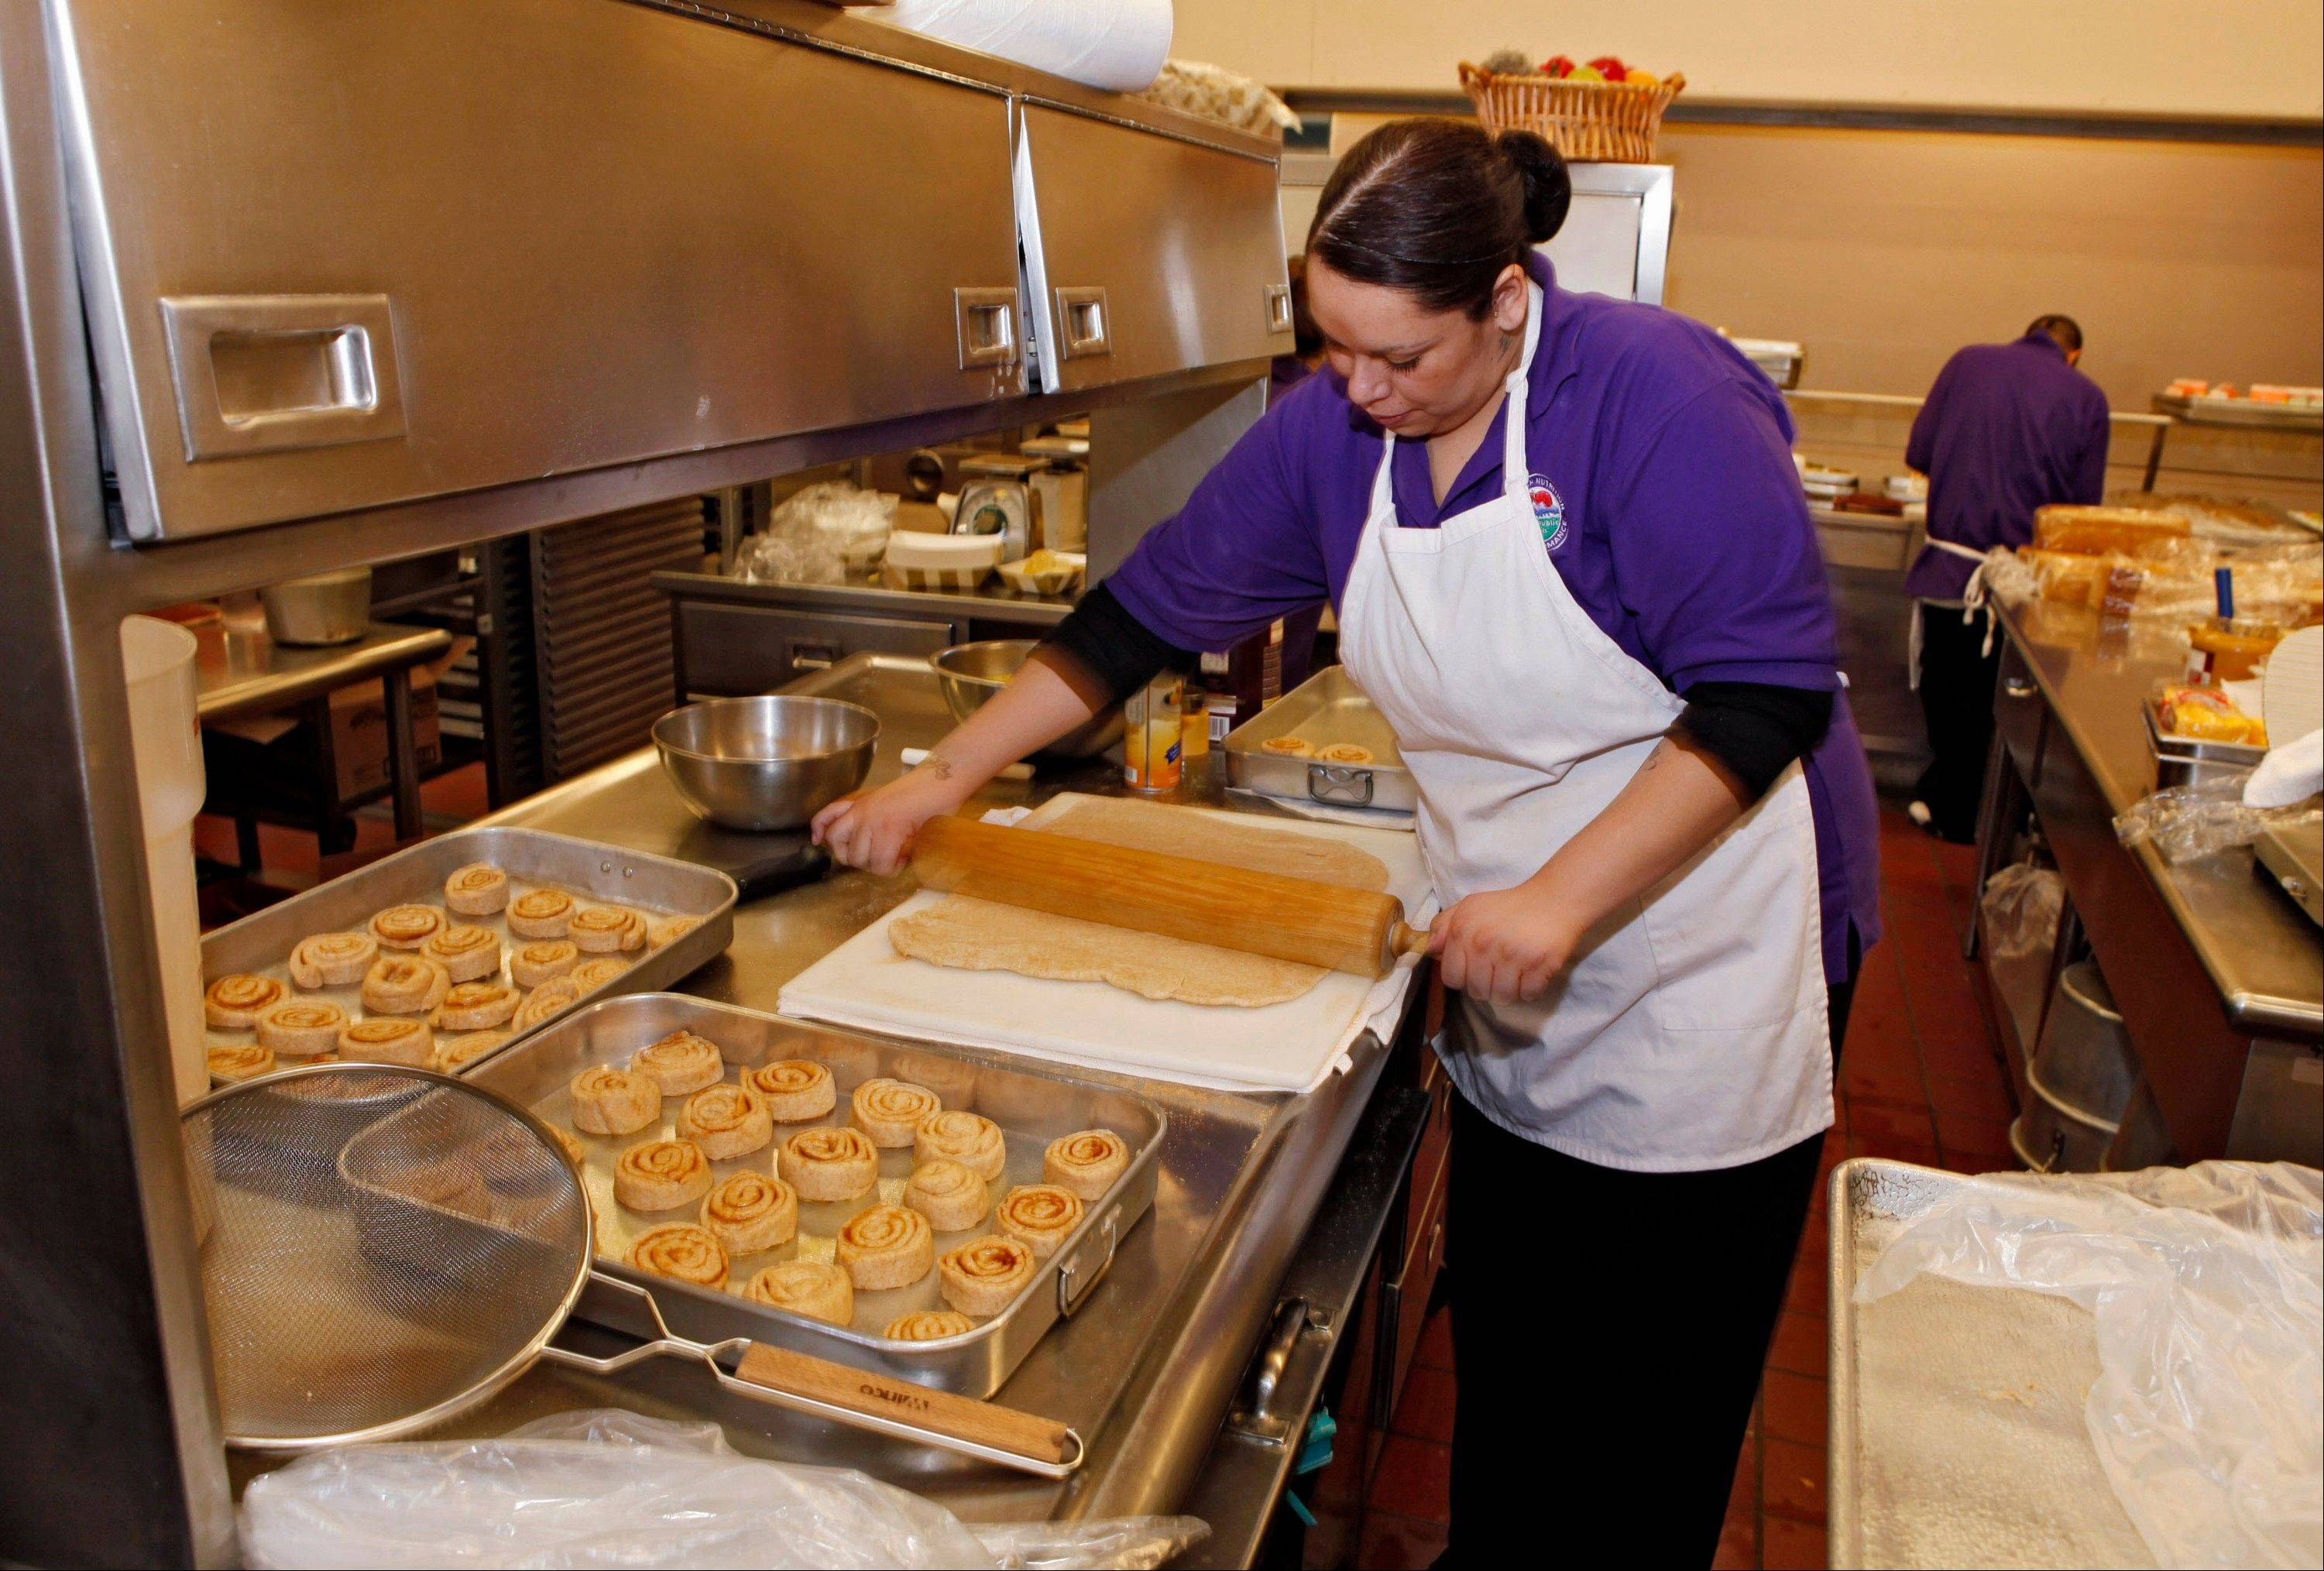 Alexes Garcia makes cinnamon rolls using apple sauce instead of trans fats. The FDA planned to announce Thursday it will require the food industry to gradually phase out all trans fats, saying they are a threat to people's health.